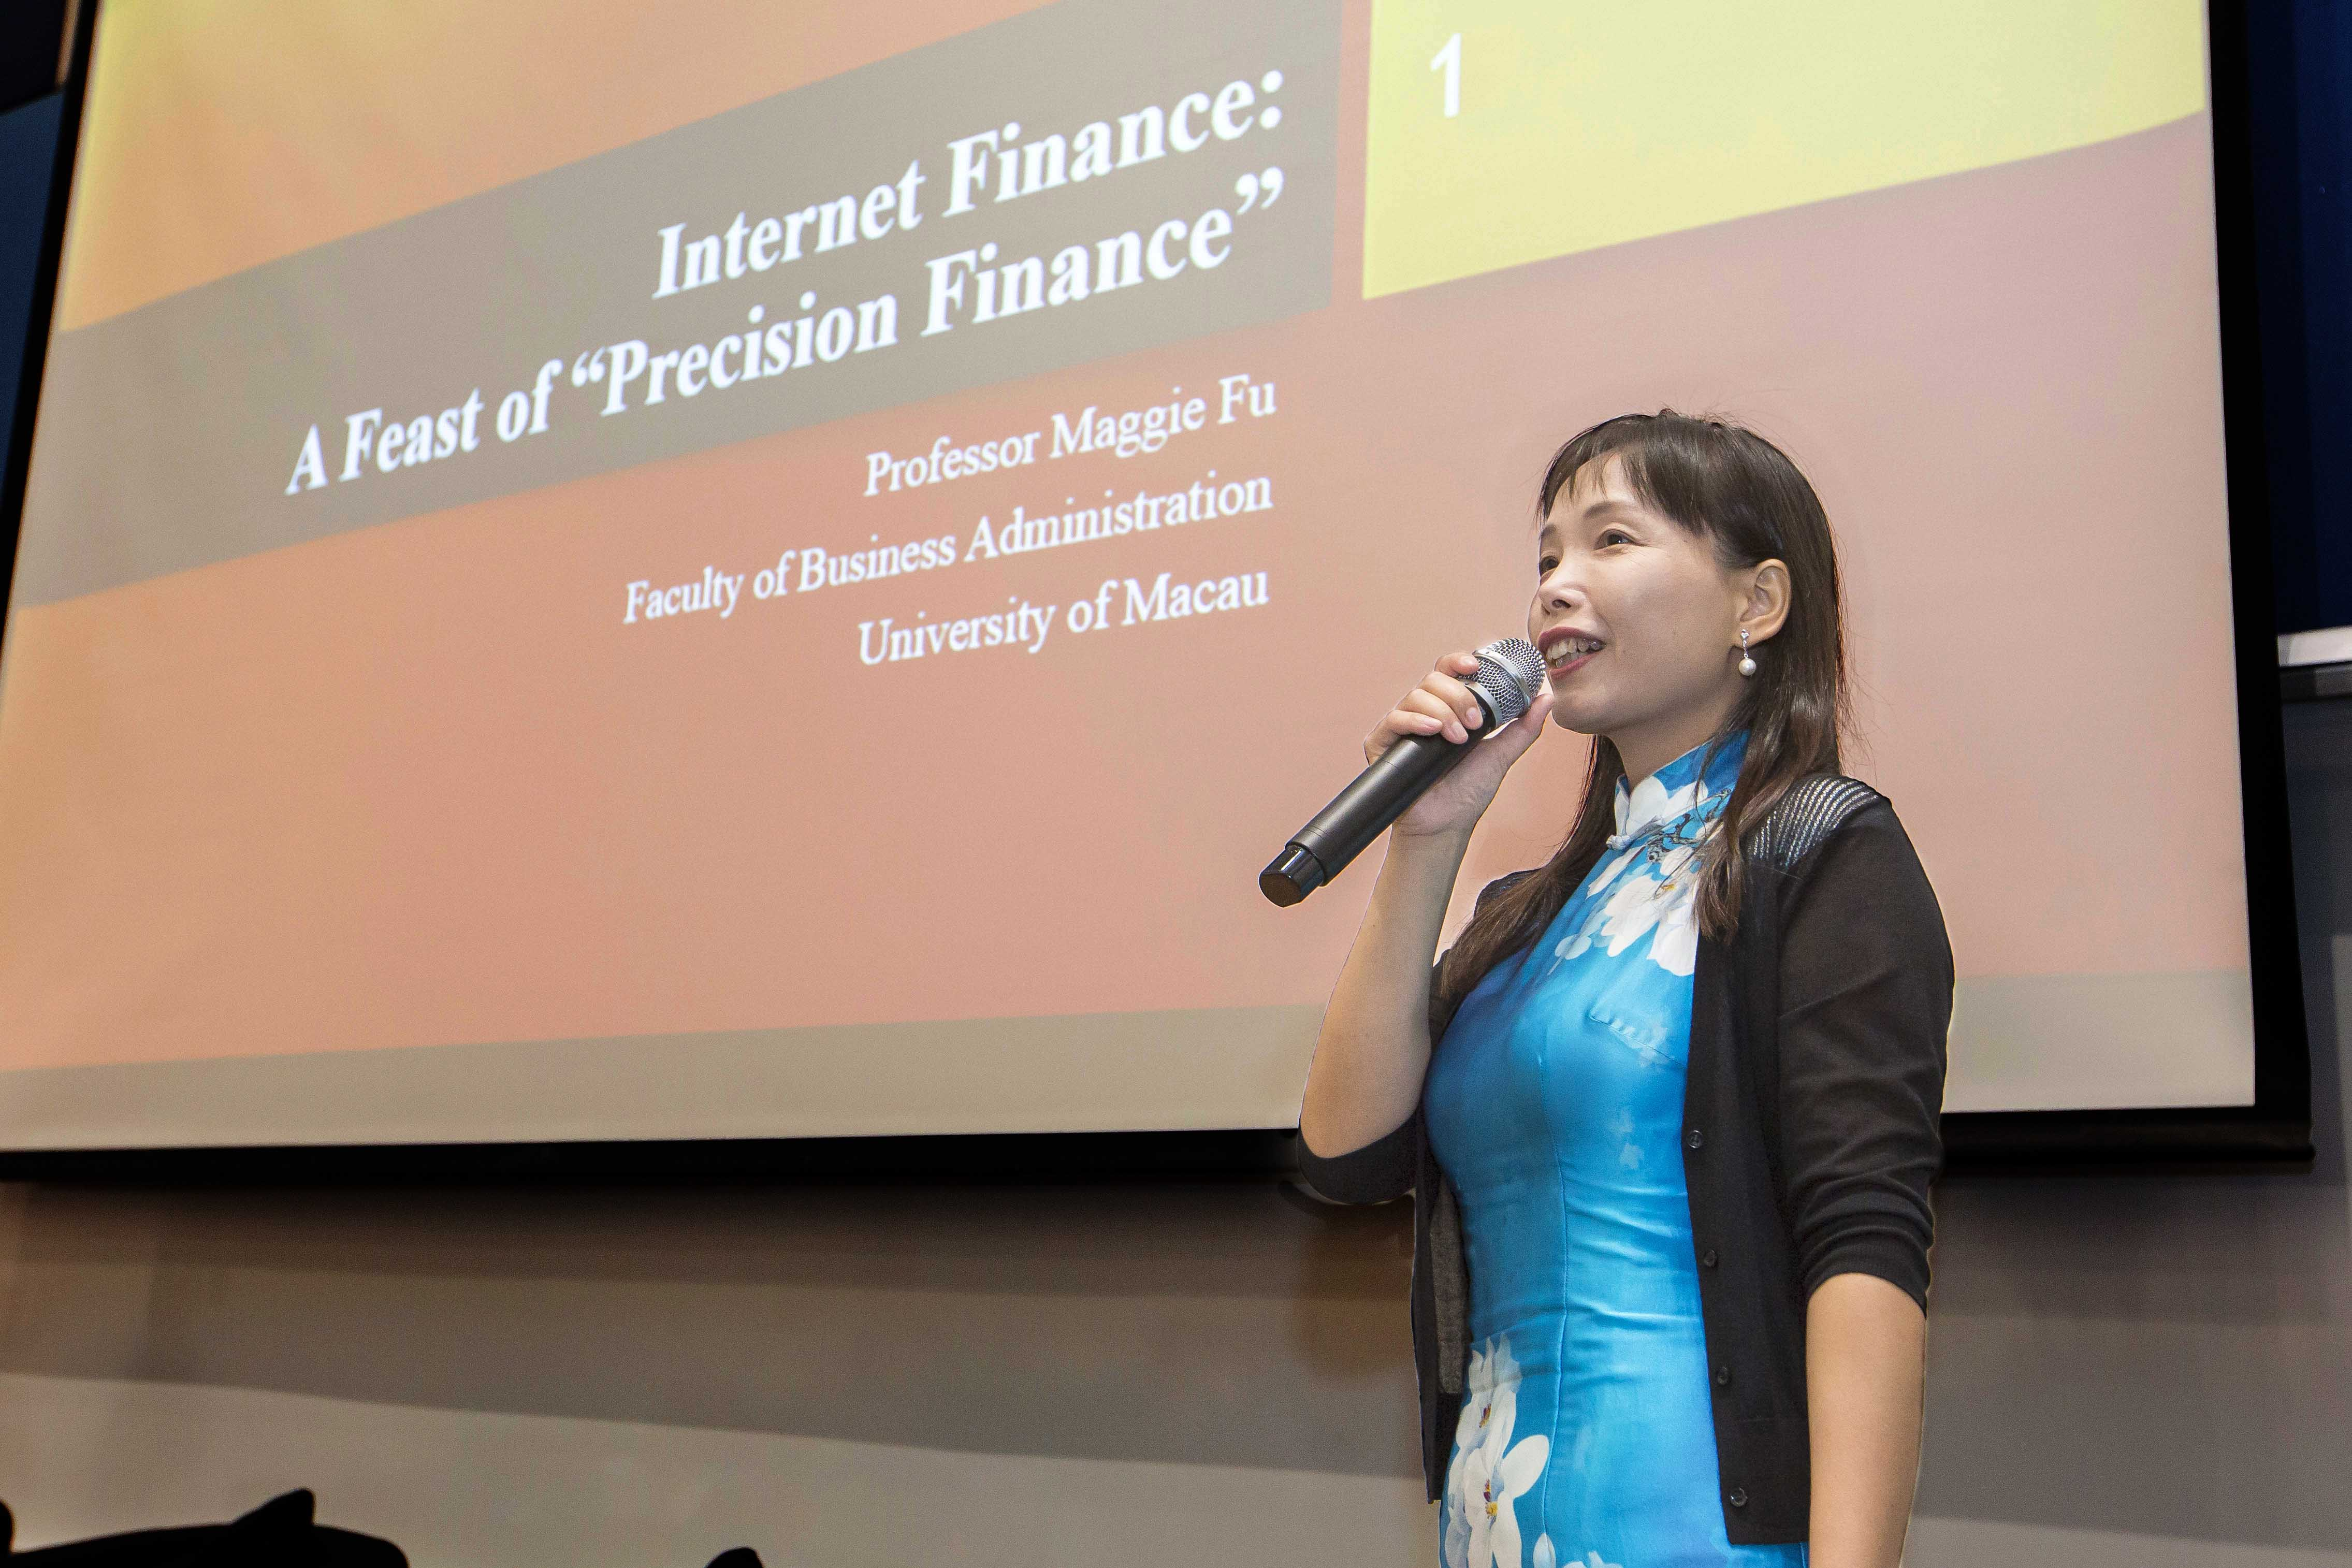 UM professor Maggie Fu discusses the opportunities and challenges generated by internet finance